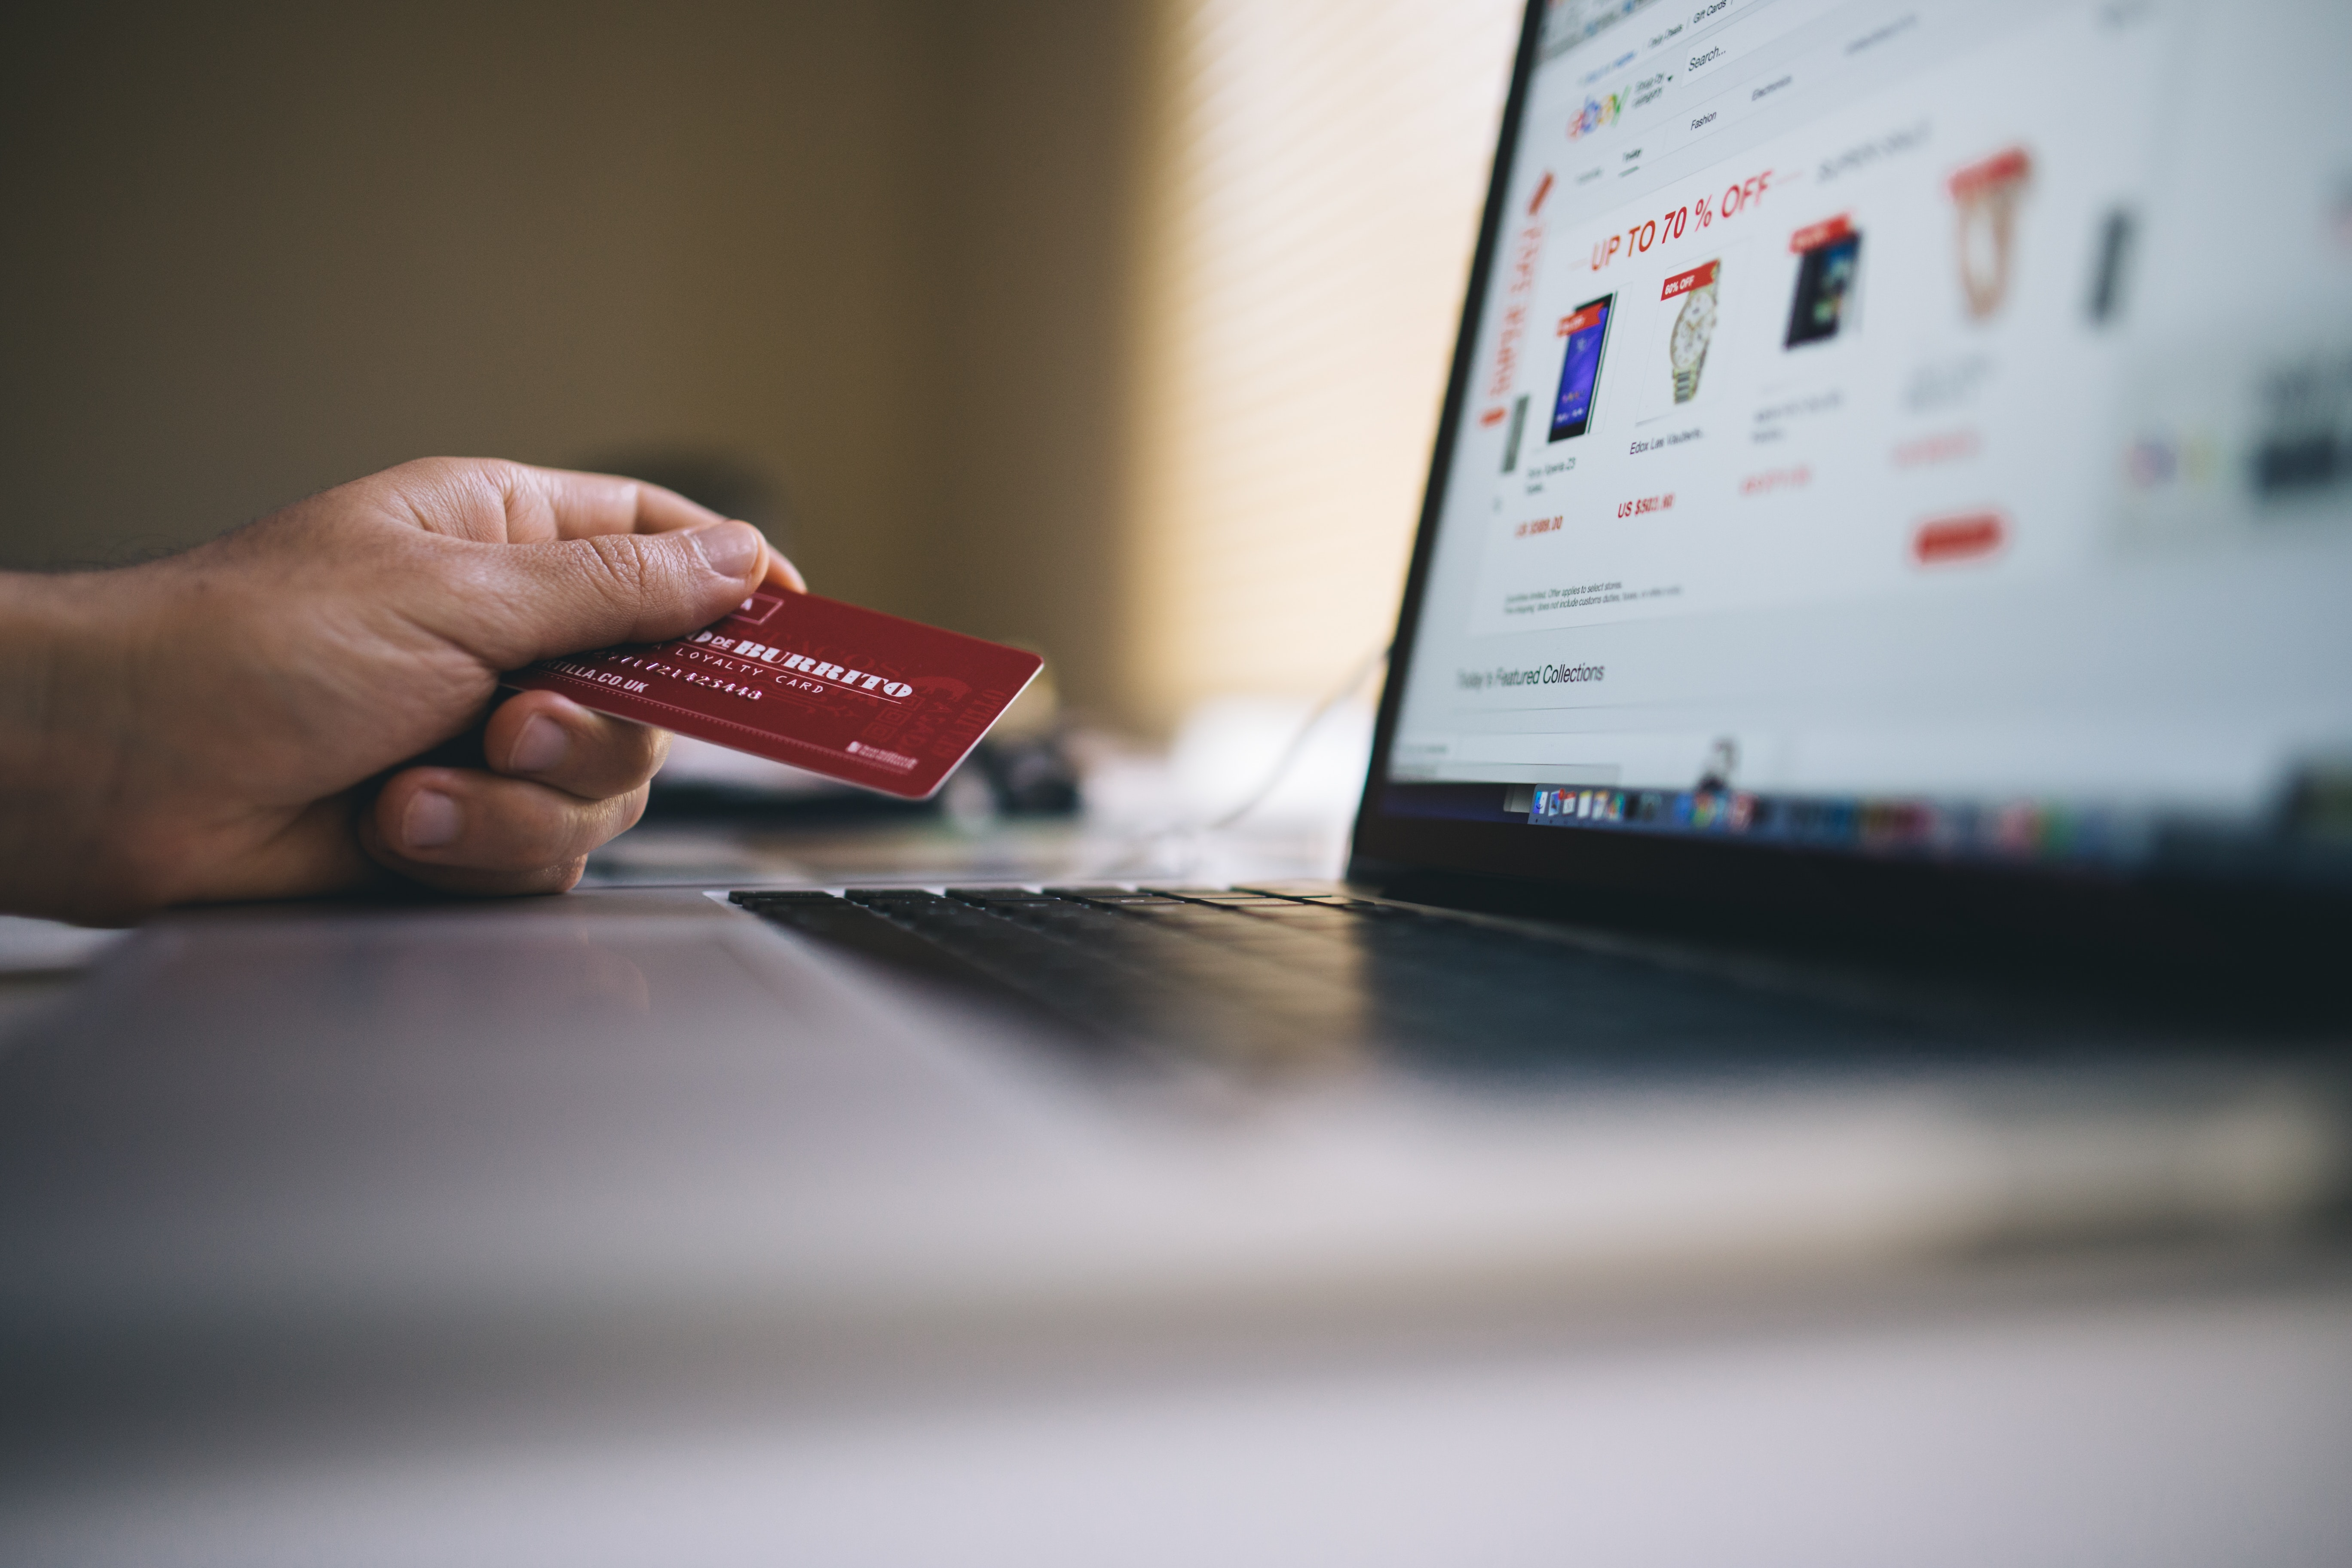 Tips for safe online shopping using credit card.